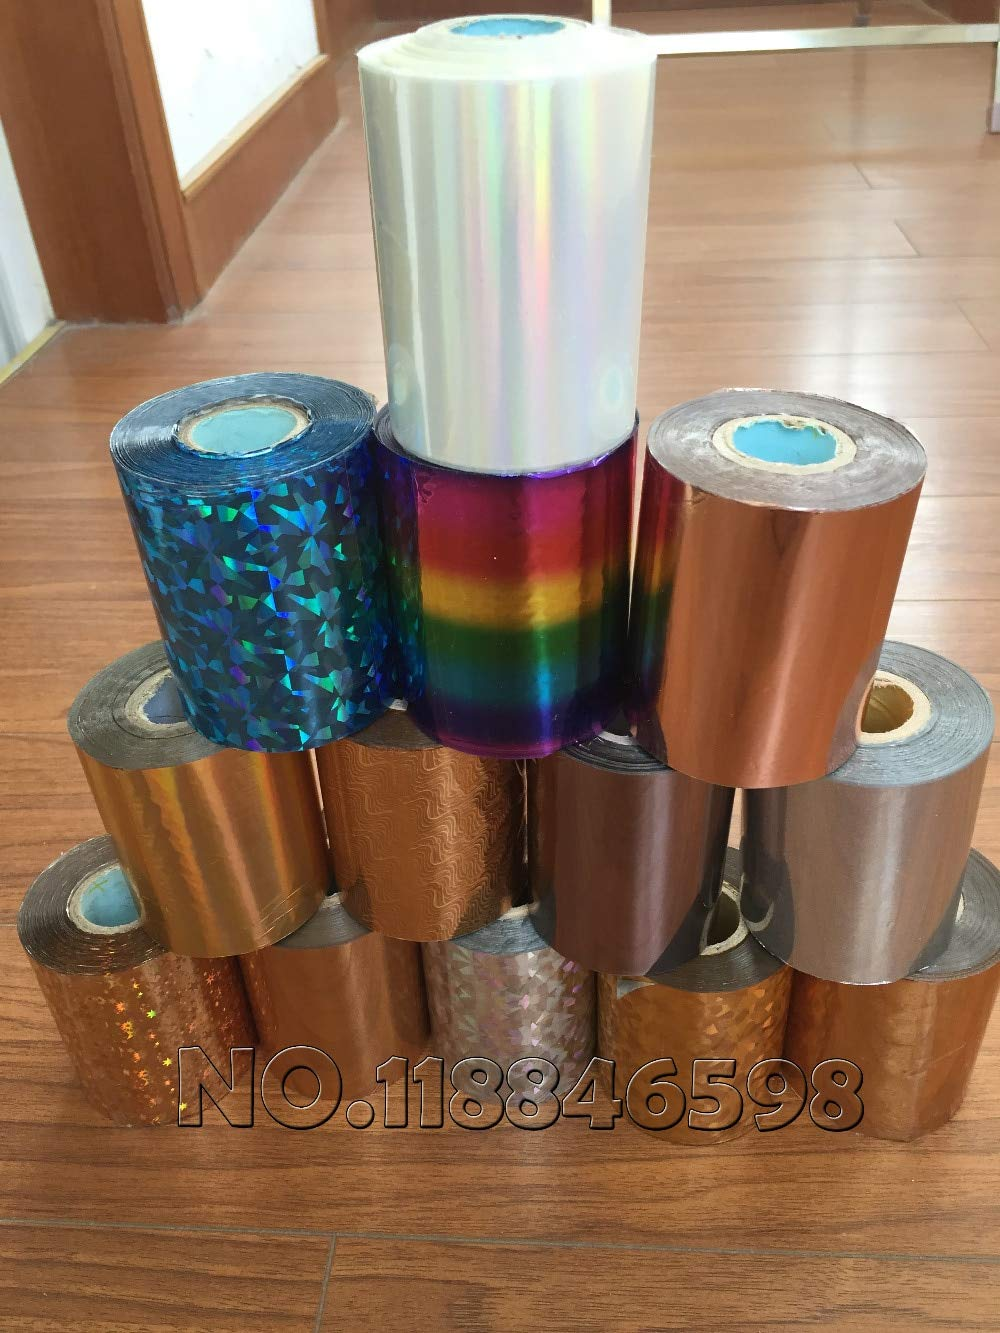 Tool Parts DIY Transfer Hot Stamping Paper Hot Selling Hot Foil Stamping Colorful 80mmx120M Heat Stamping Foil Film - (Color: rose gold)